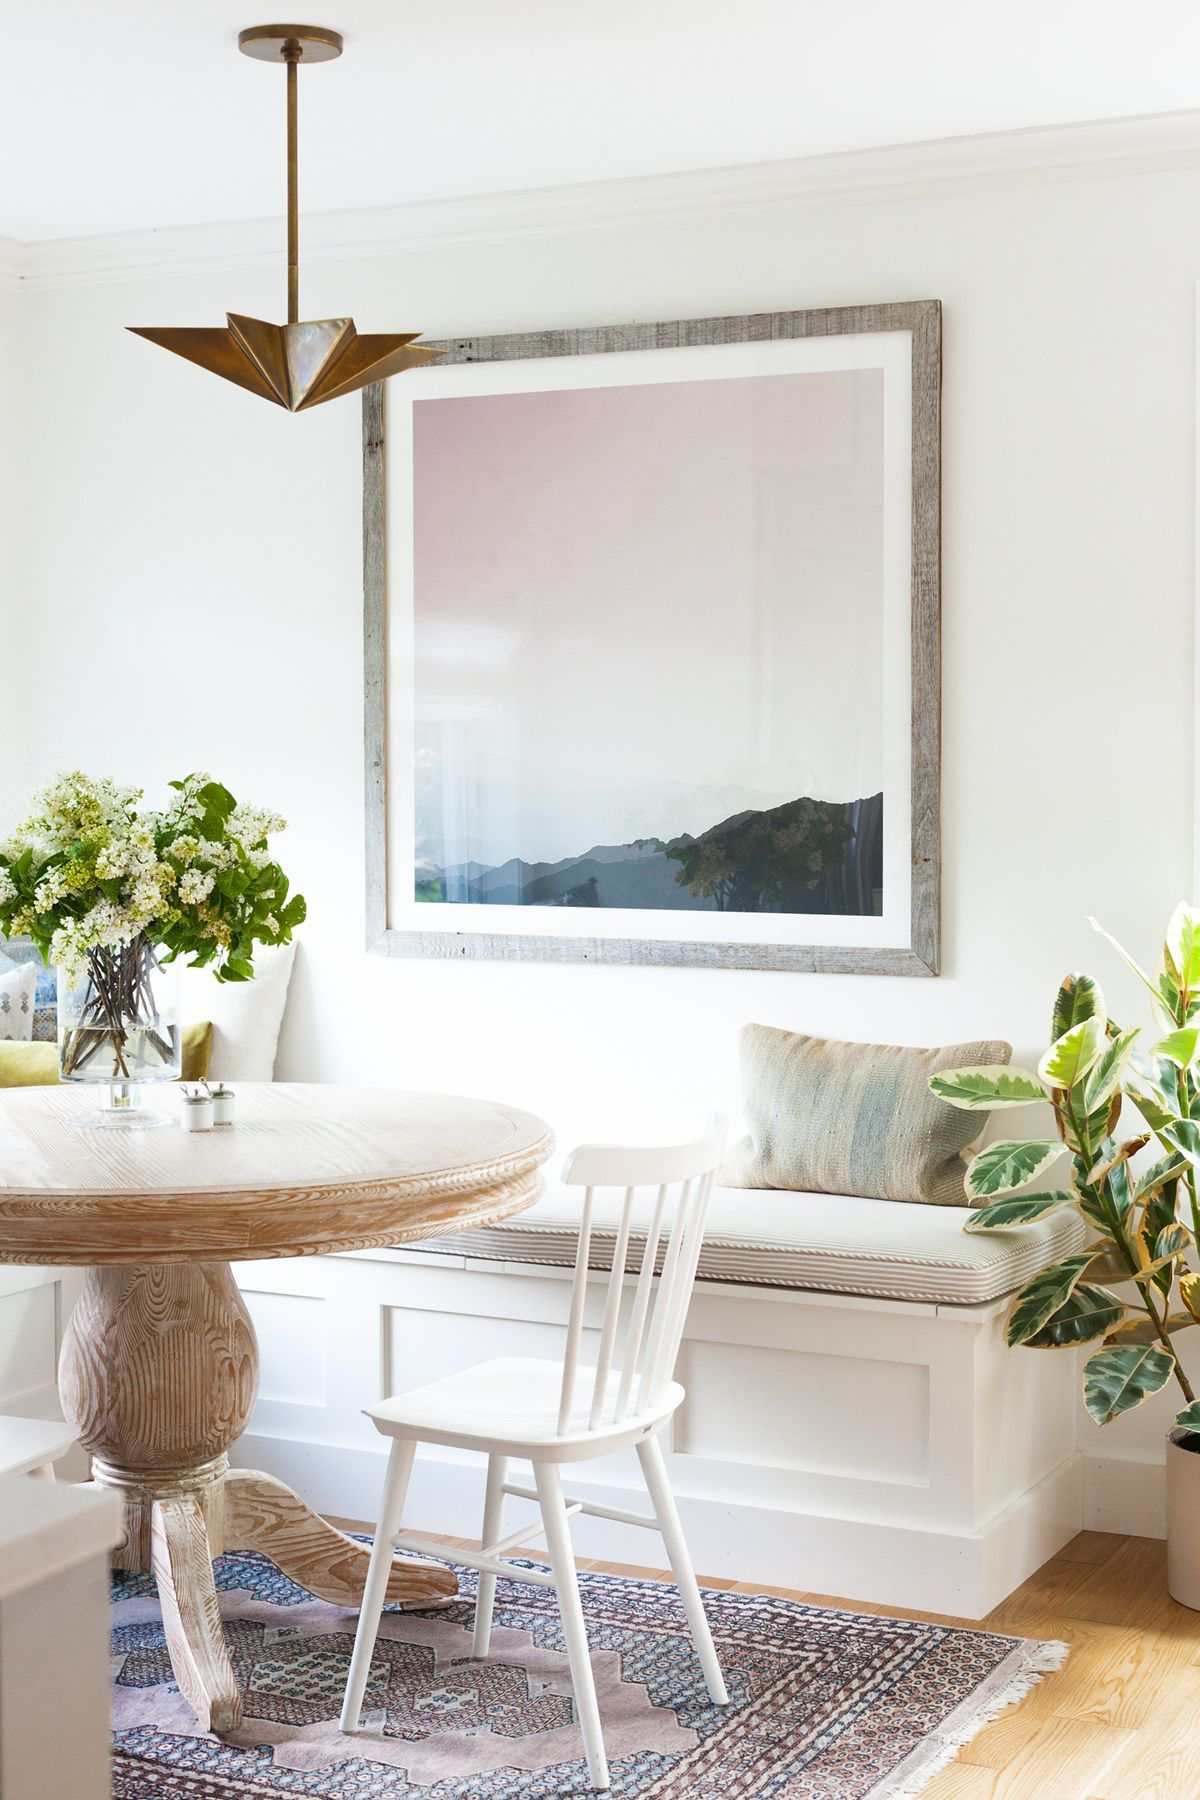 The coco kelley kitchen remodel reveal modern farmhouse style